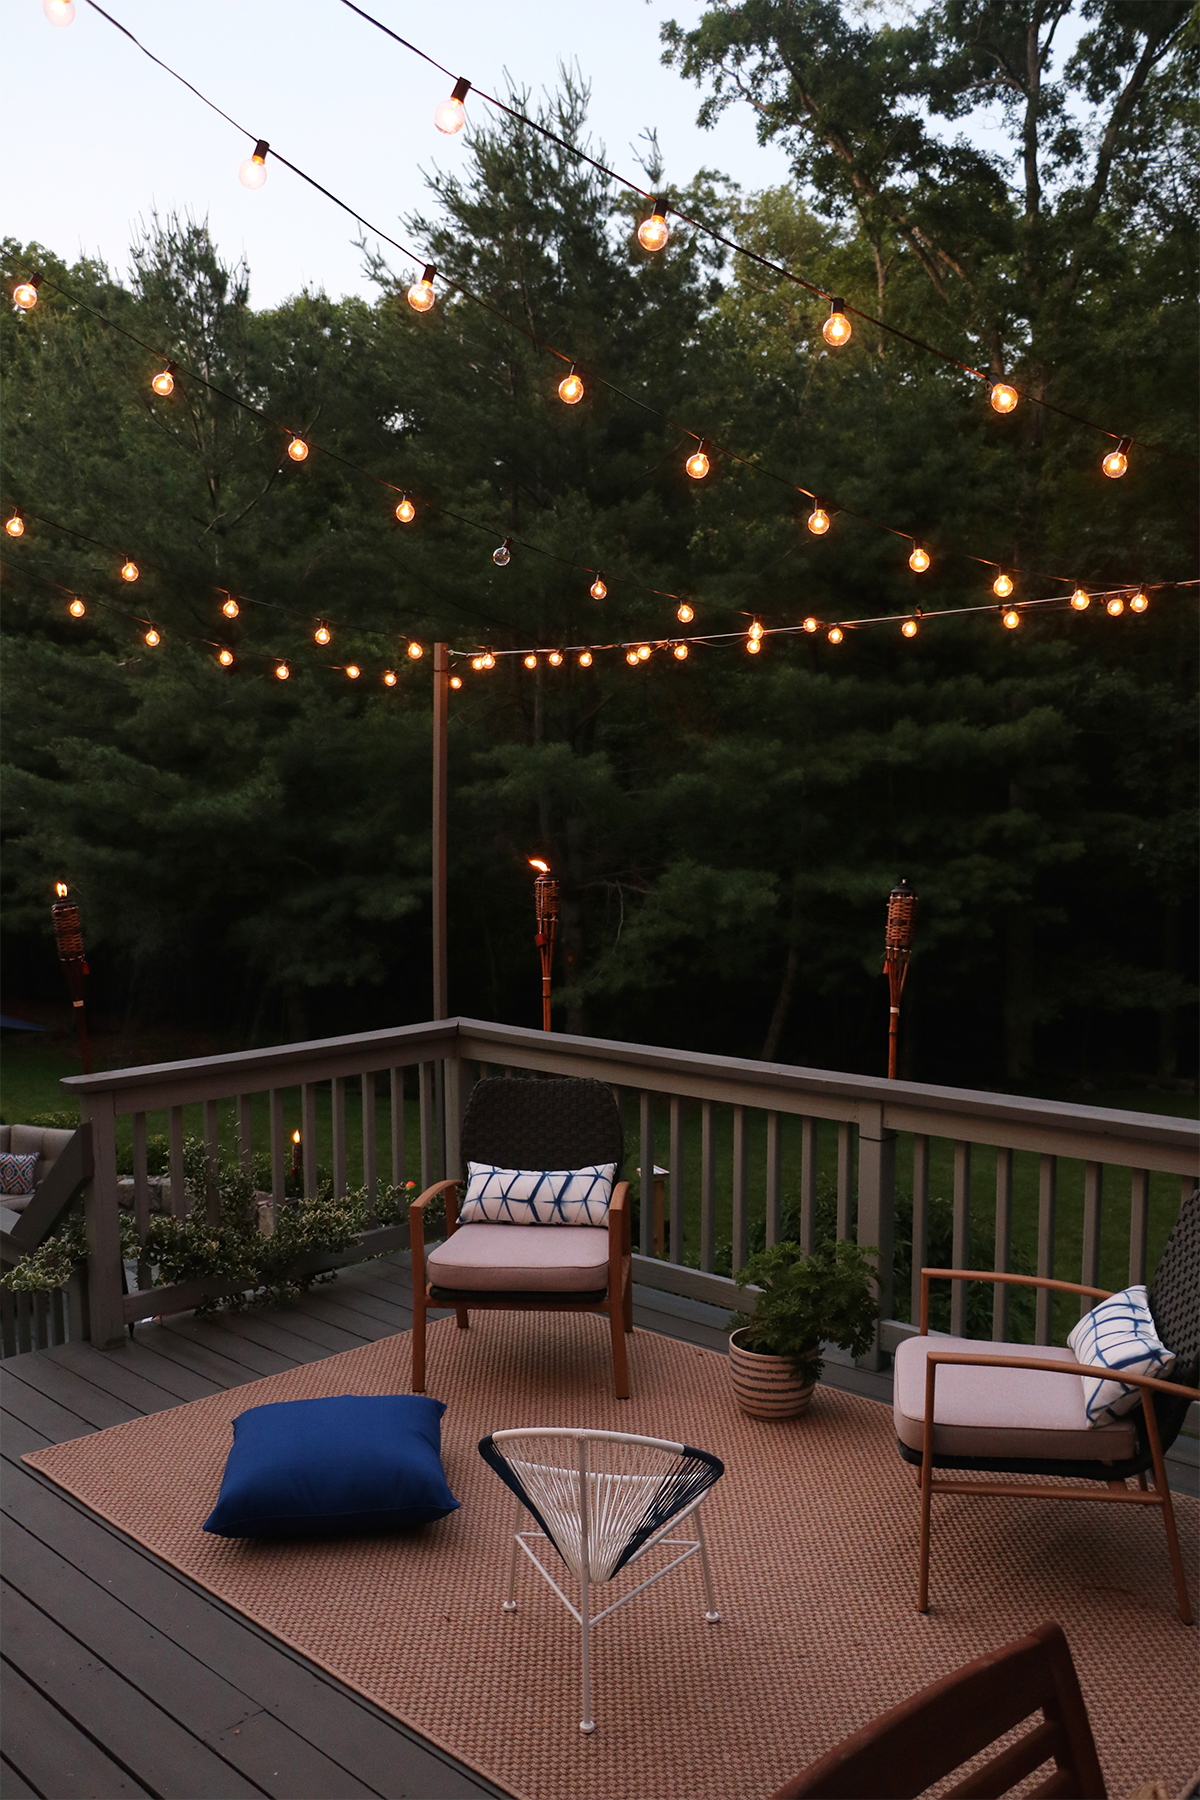 How We Hung Our Back Deck String Lights for Bistro-Style Ambiance | root + dwell